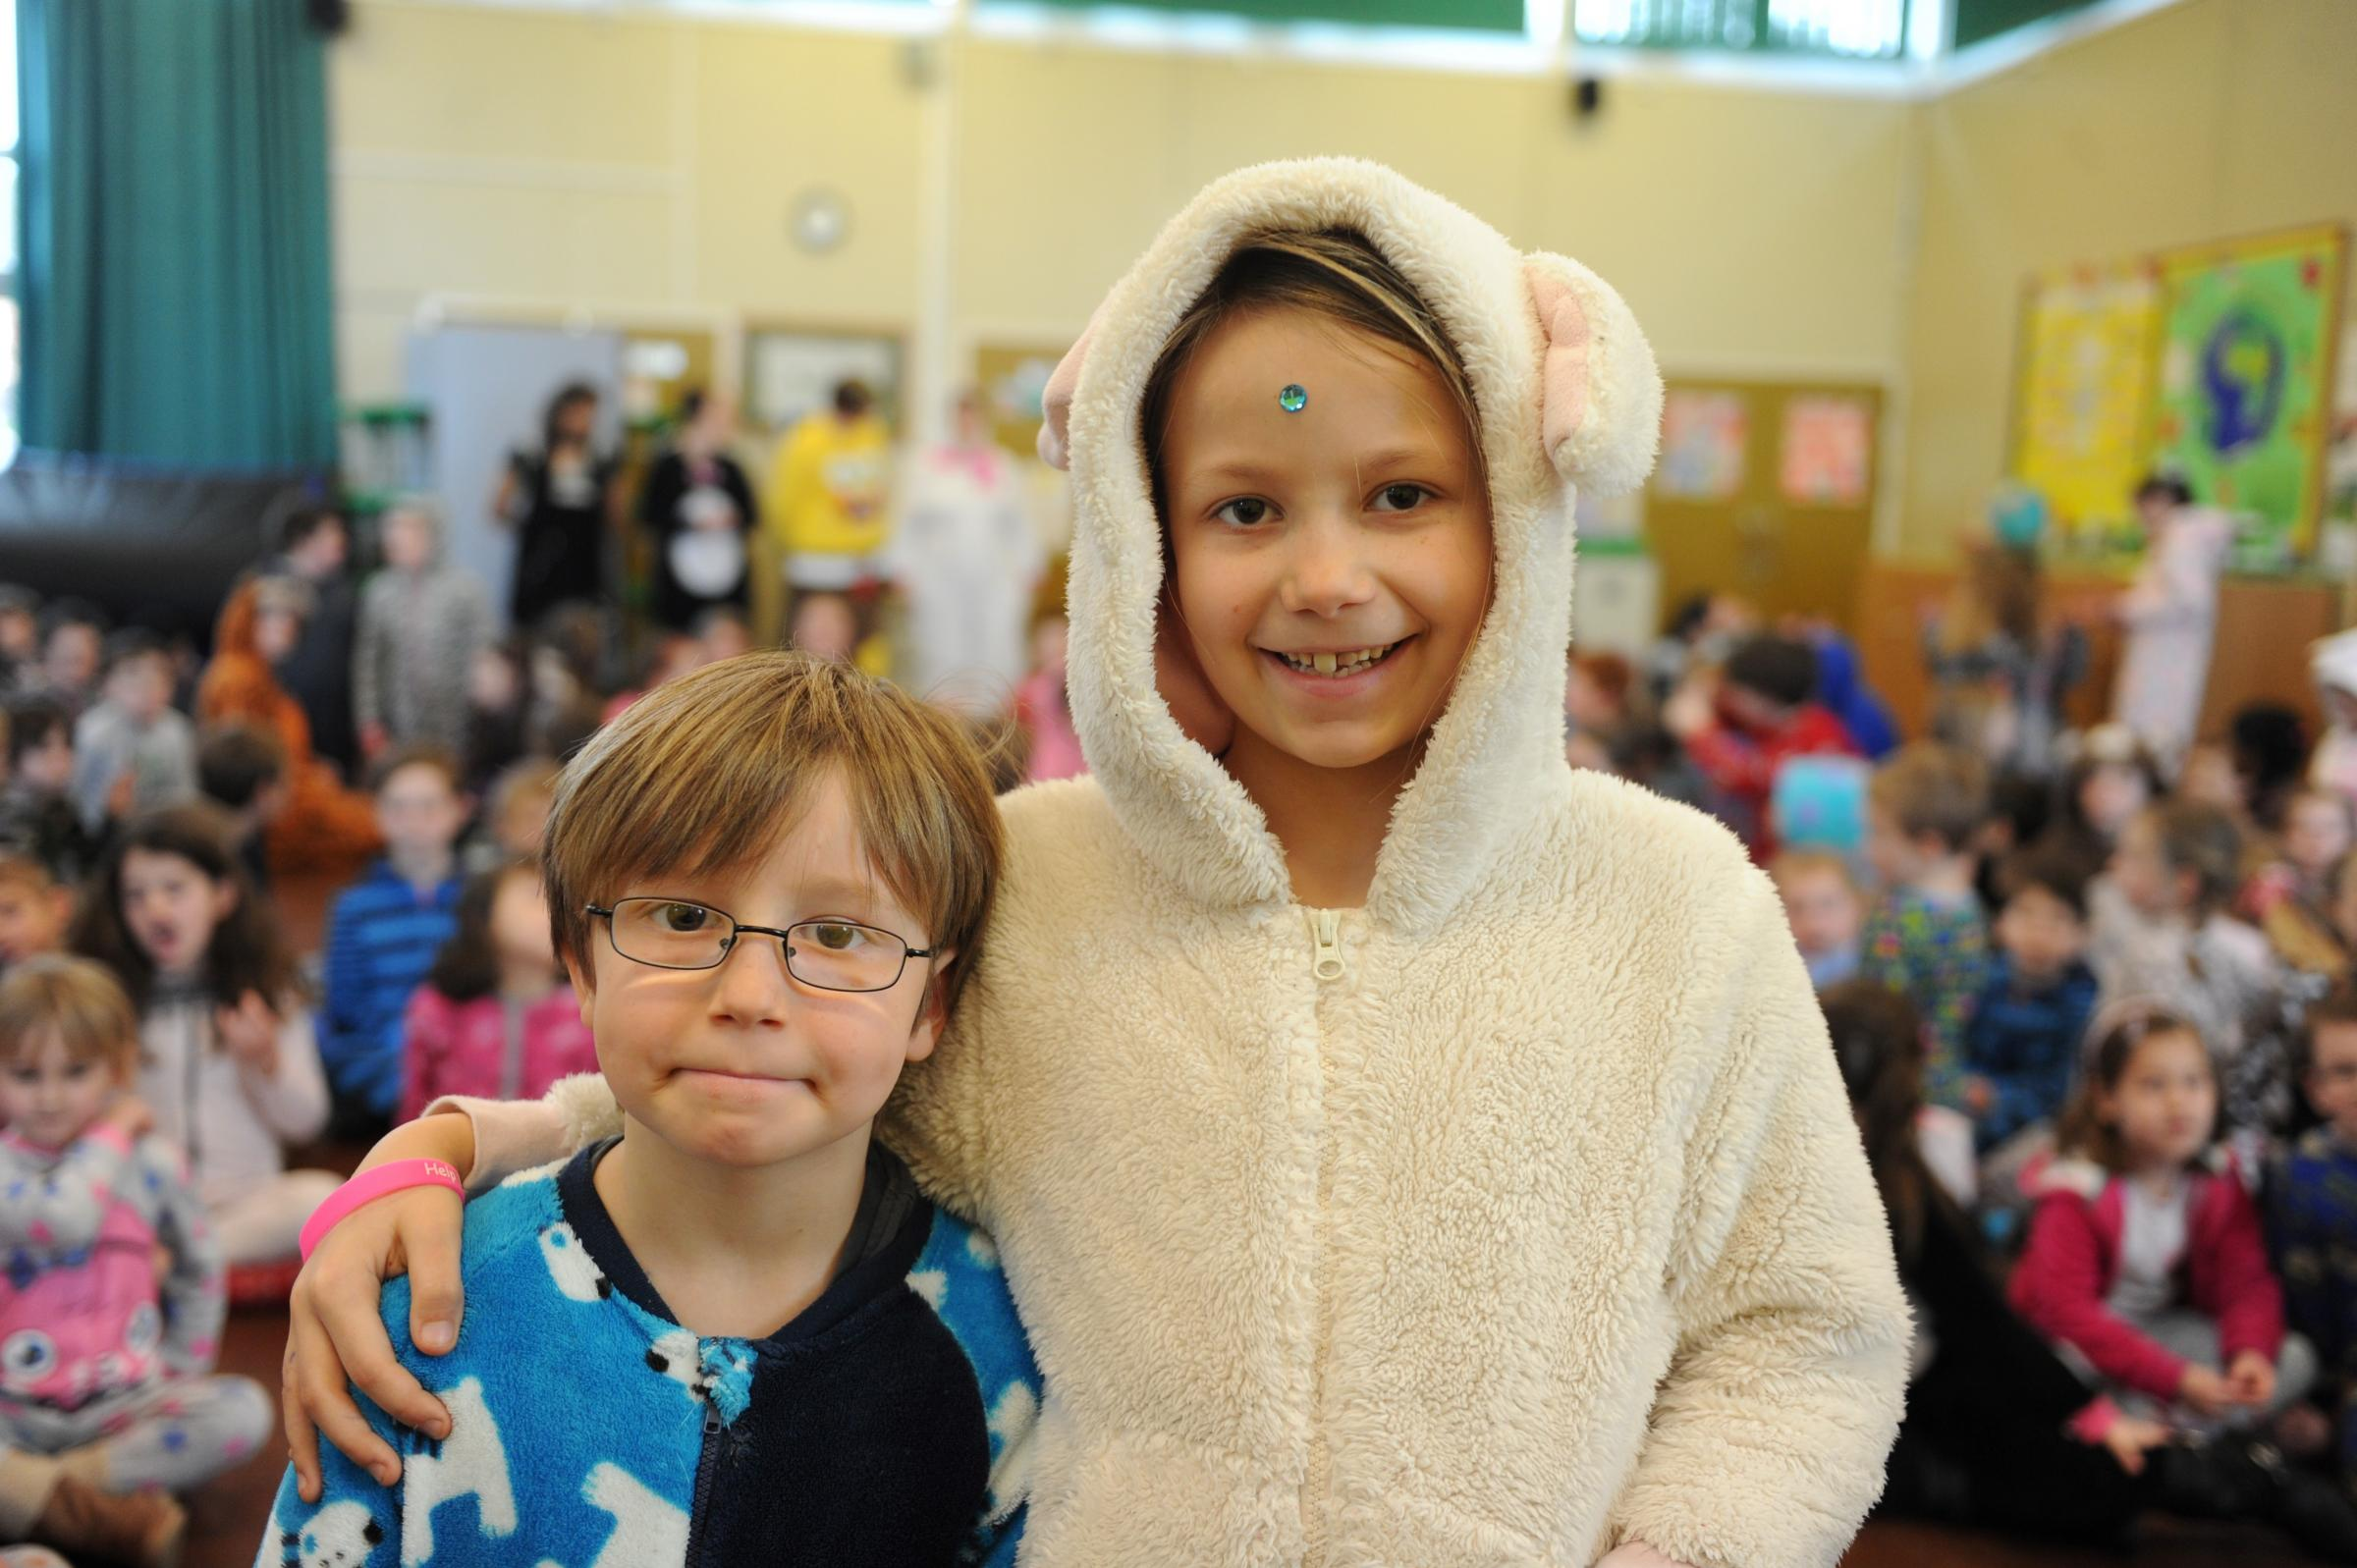 Chepstow pupils wear onesies to raise cash for Imogen appeal